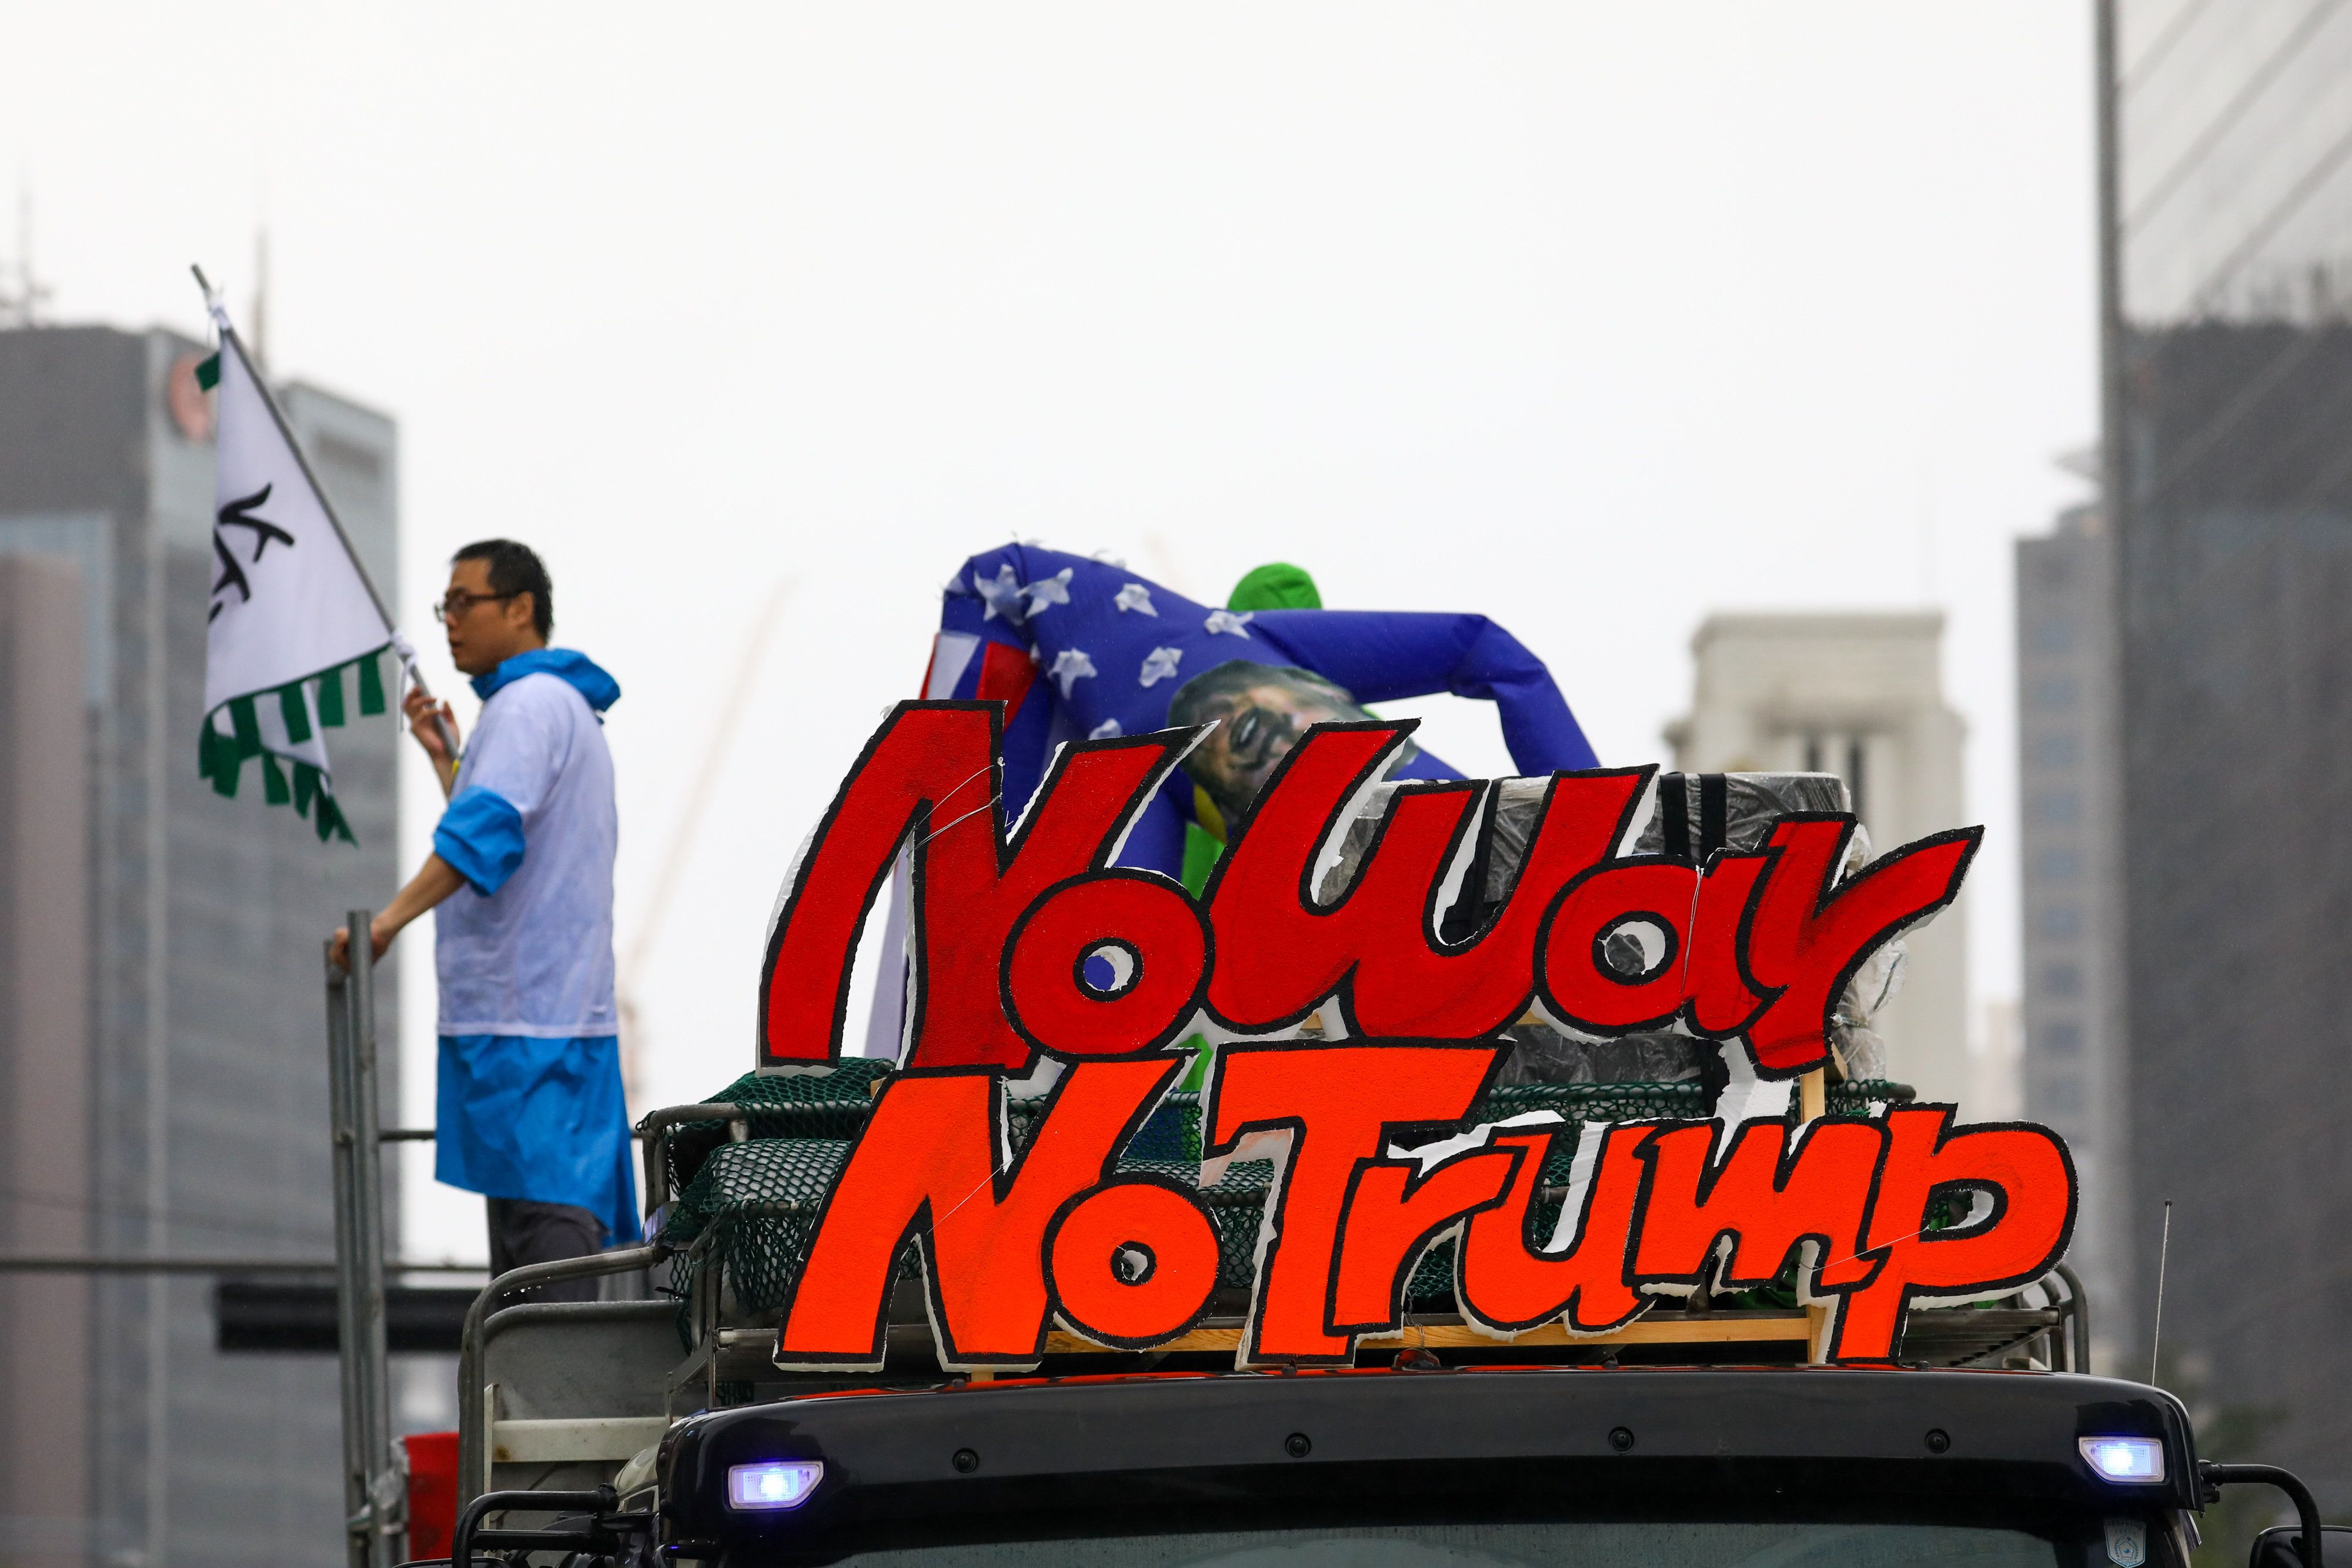 A truck carries a placard reading 'No War No Trump' following a rally against the deployment of the Terminal High-Altitude Area Defense (THAAD) system in Seoul, South Korea, on Tuesday, Aug. 15, 2017.In a speech on Tuesday marking the anniversary of the end of Japanese occupation in the 1940s, South Korean President Moon Jae-in said that any military action against Kim Jong Un's regime requires his nation's approval, and vowed to prevent war at all costs. Photographer: SeongJoon Cho/Bloomberg via Getty Images